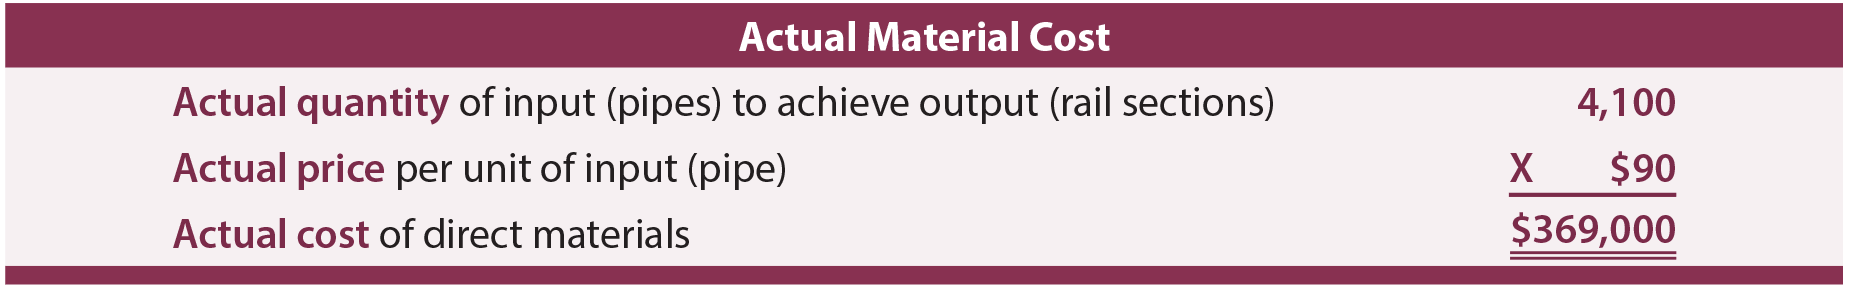 Actual Material Cost